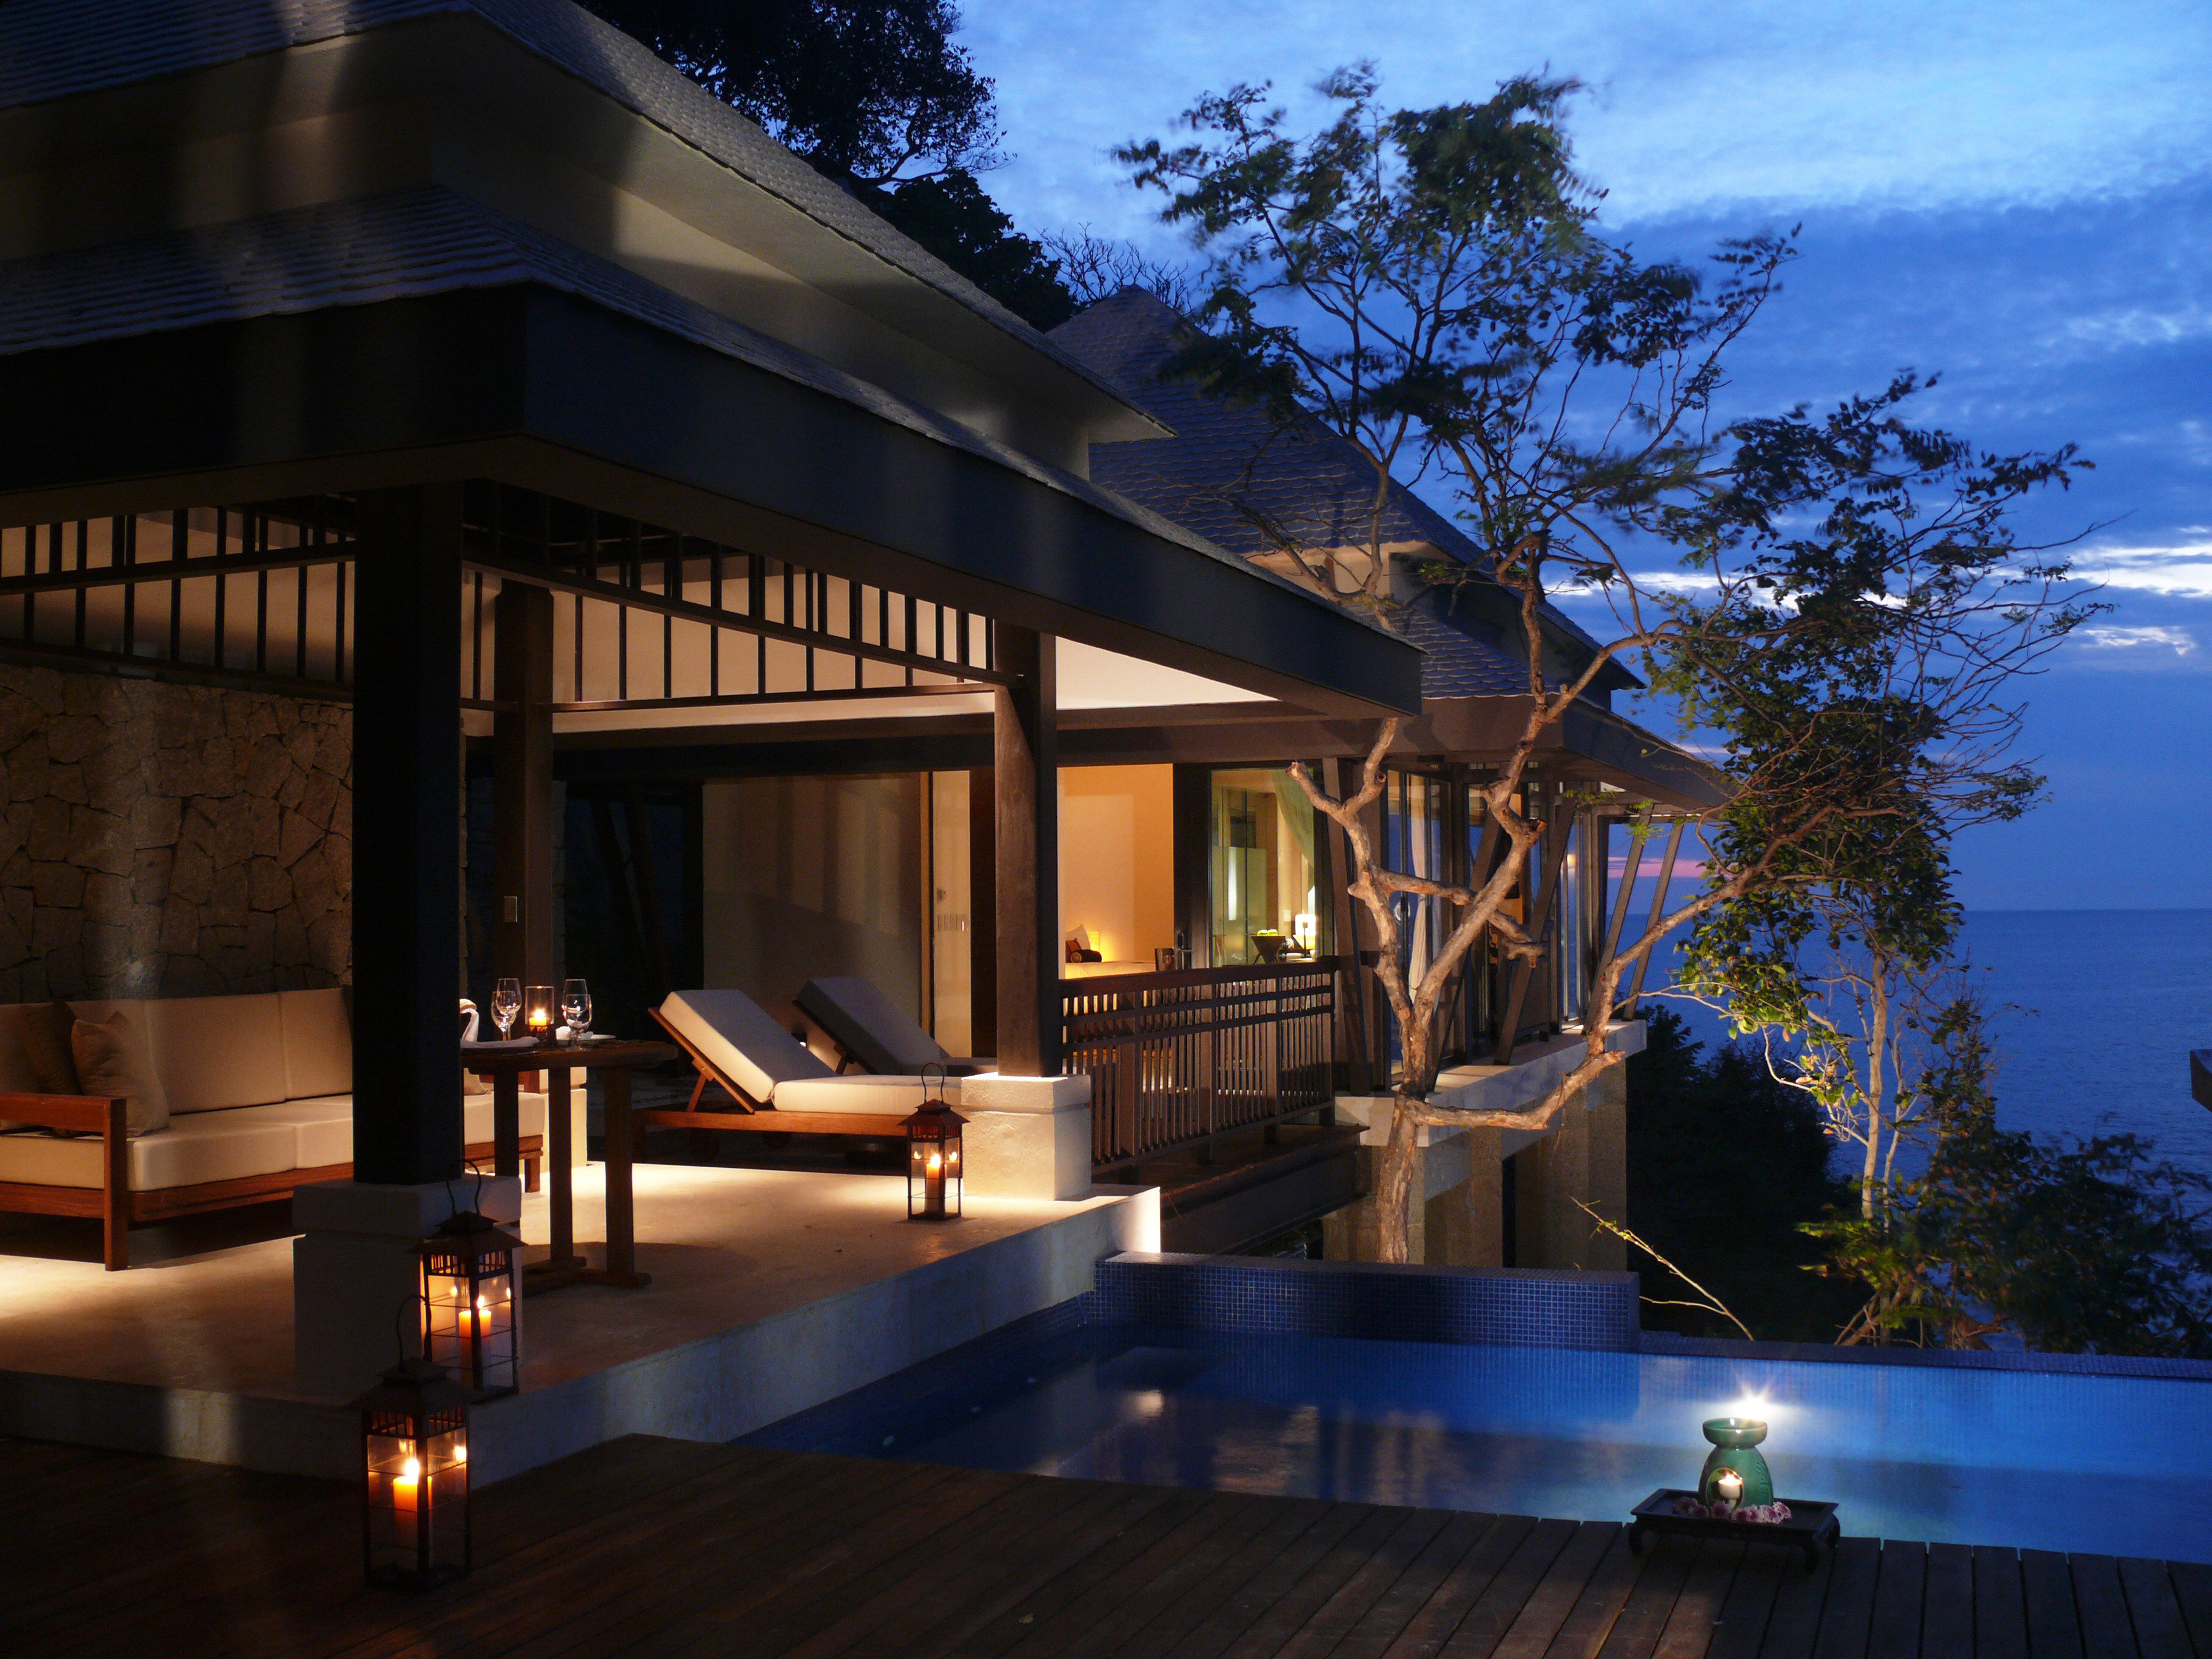 Deck Lounge Luxury Pool Romantic tree house property building home swimming pool landscape lighting Villa lighting Resort backyard mansion outdoor structure